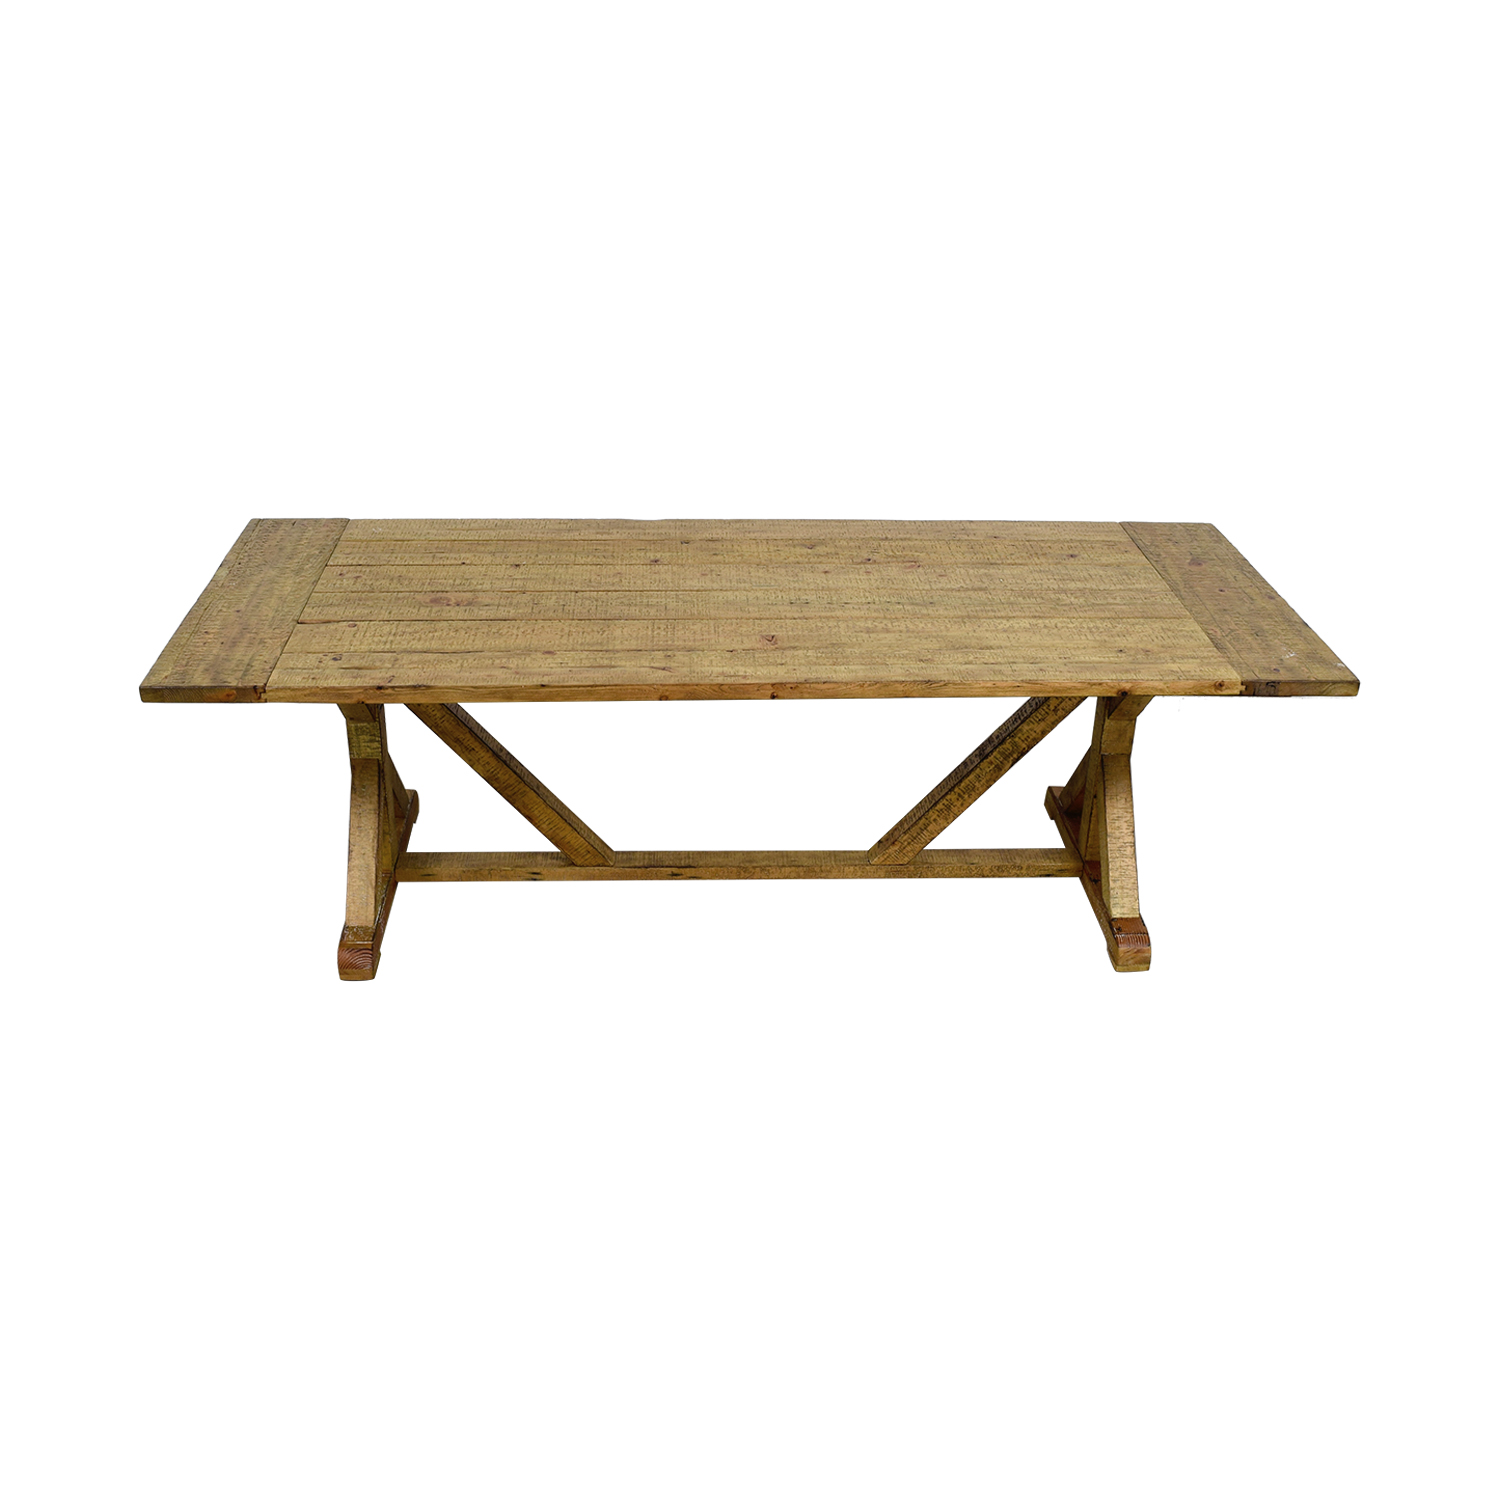 iNSPIRE Q Paloma Rustic Reclaimed Wood Rectangular Trestle Farm Table iNSPIRE Q